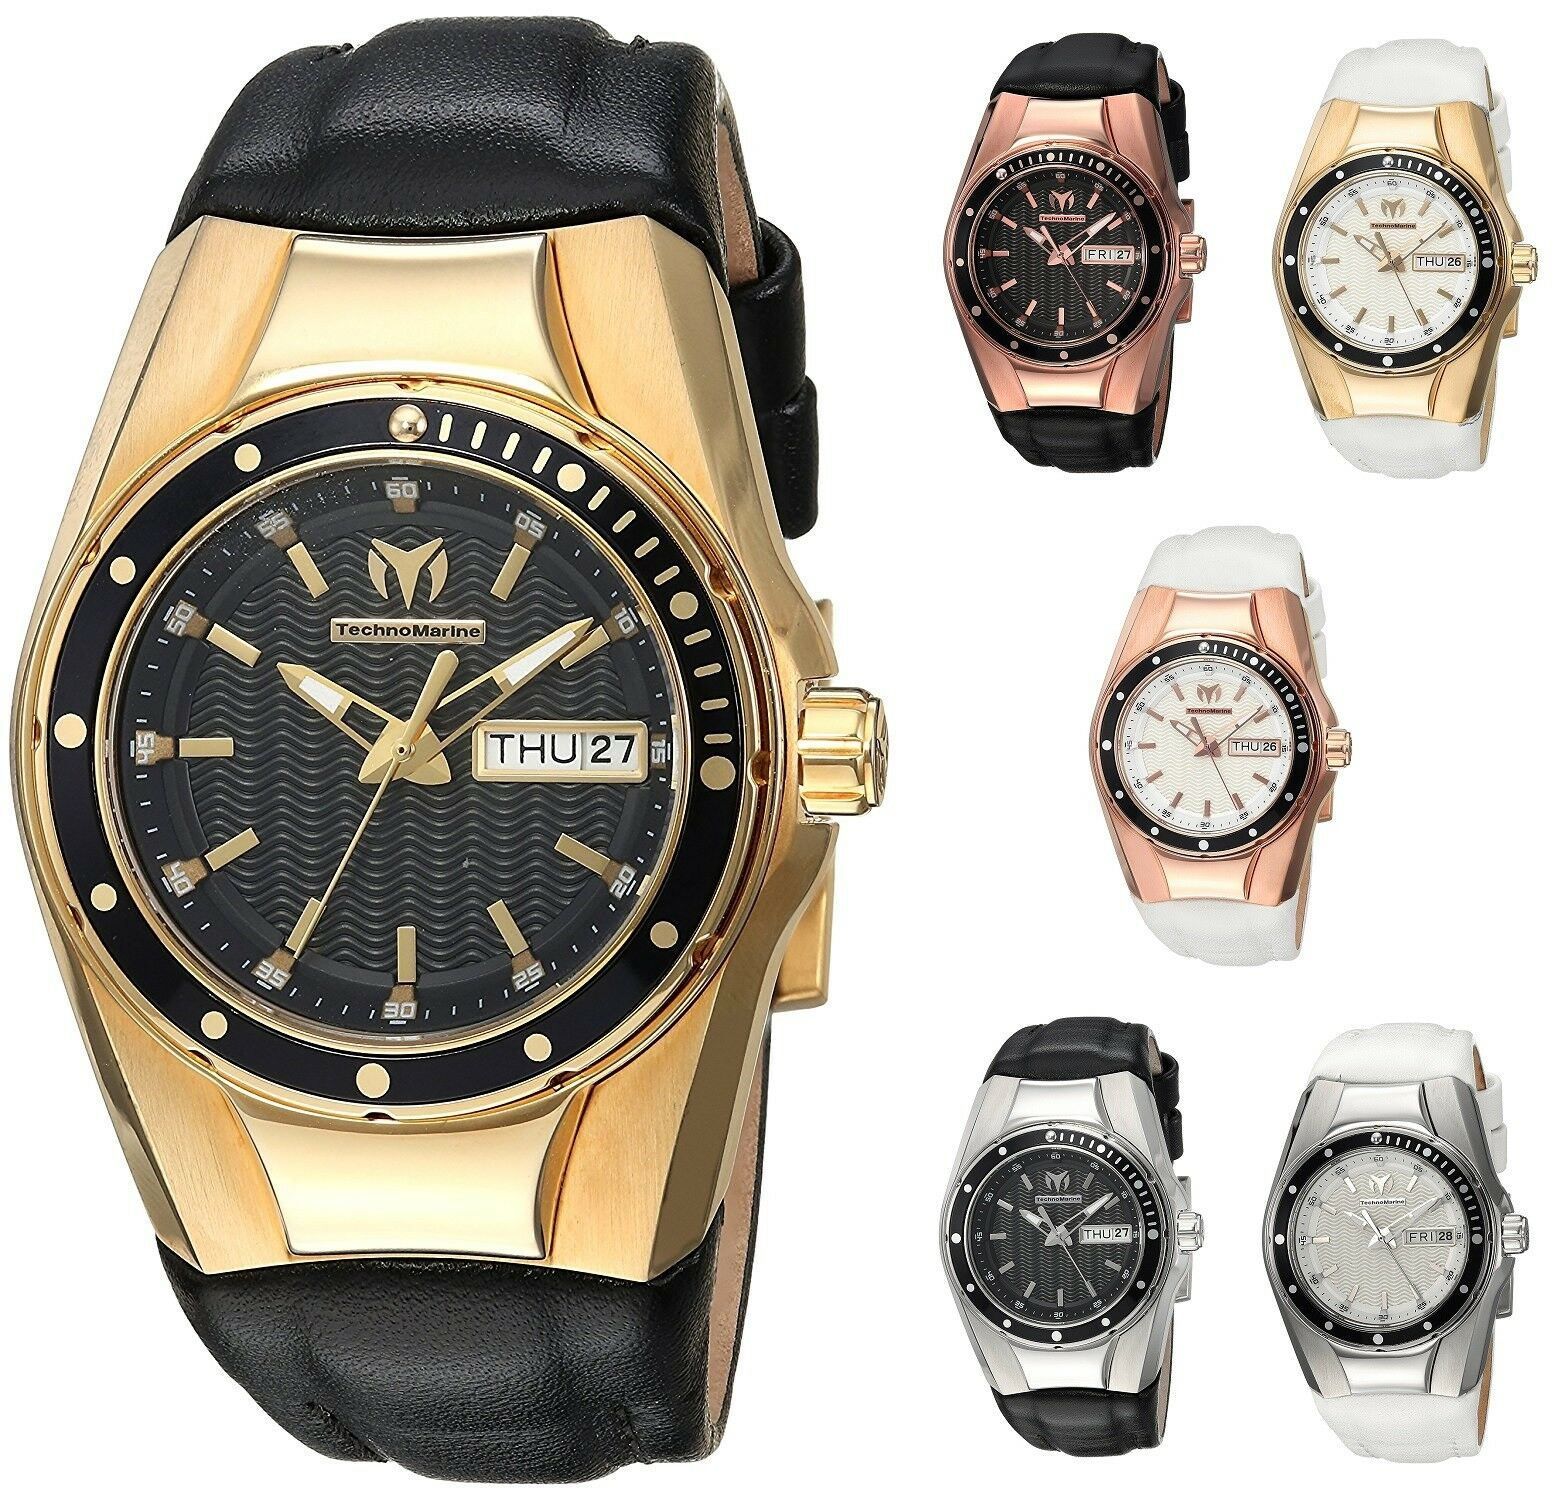 philippines images watches women to here technomarine best click larger cruise view online